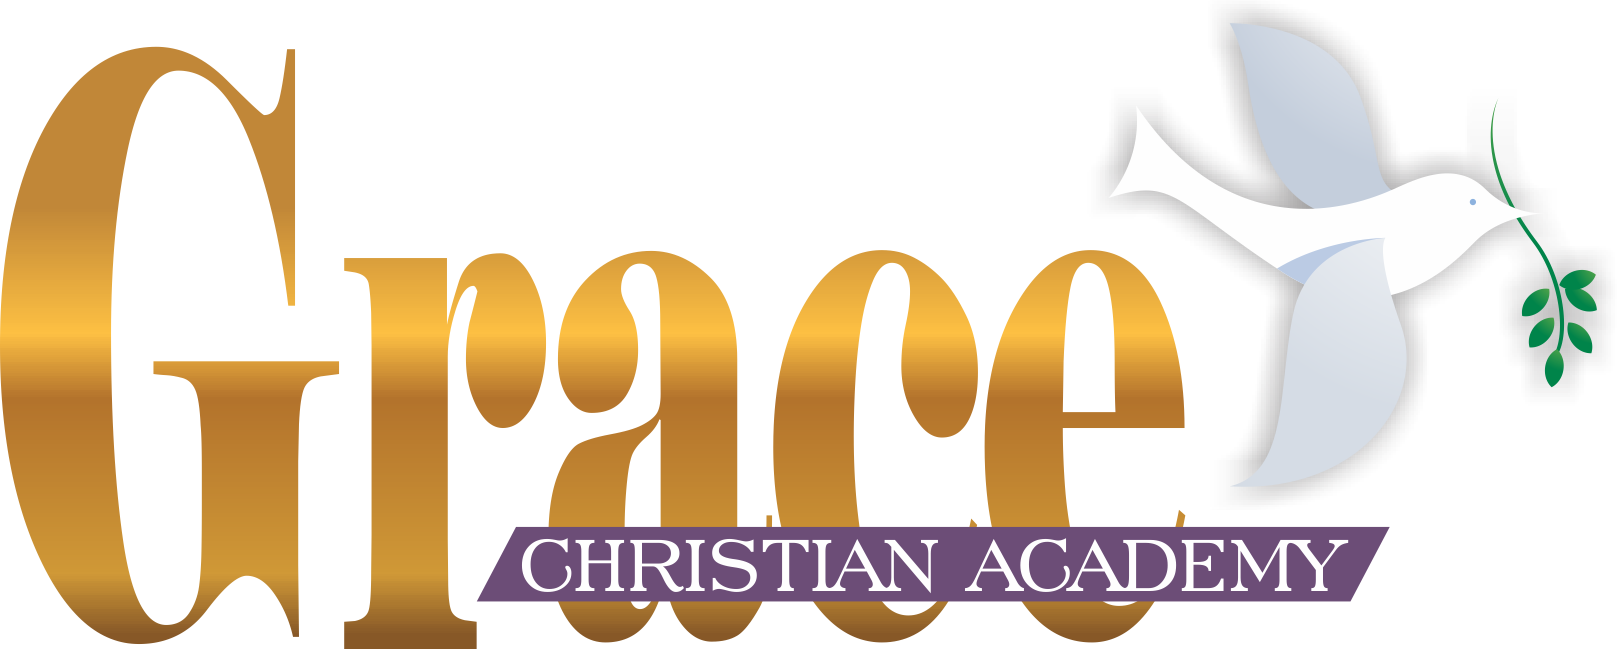 Grace Christian Academy Home School Jasper Alabama Walker County